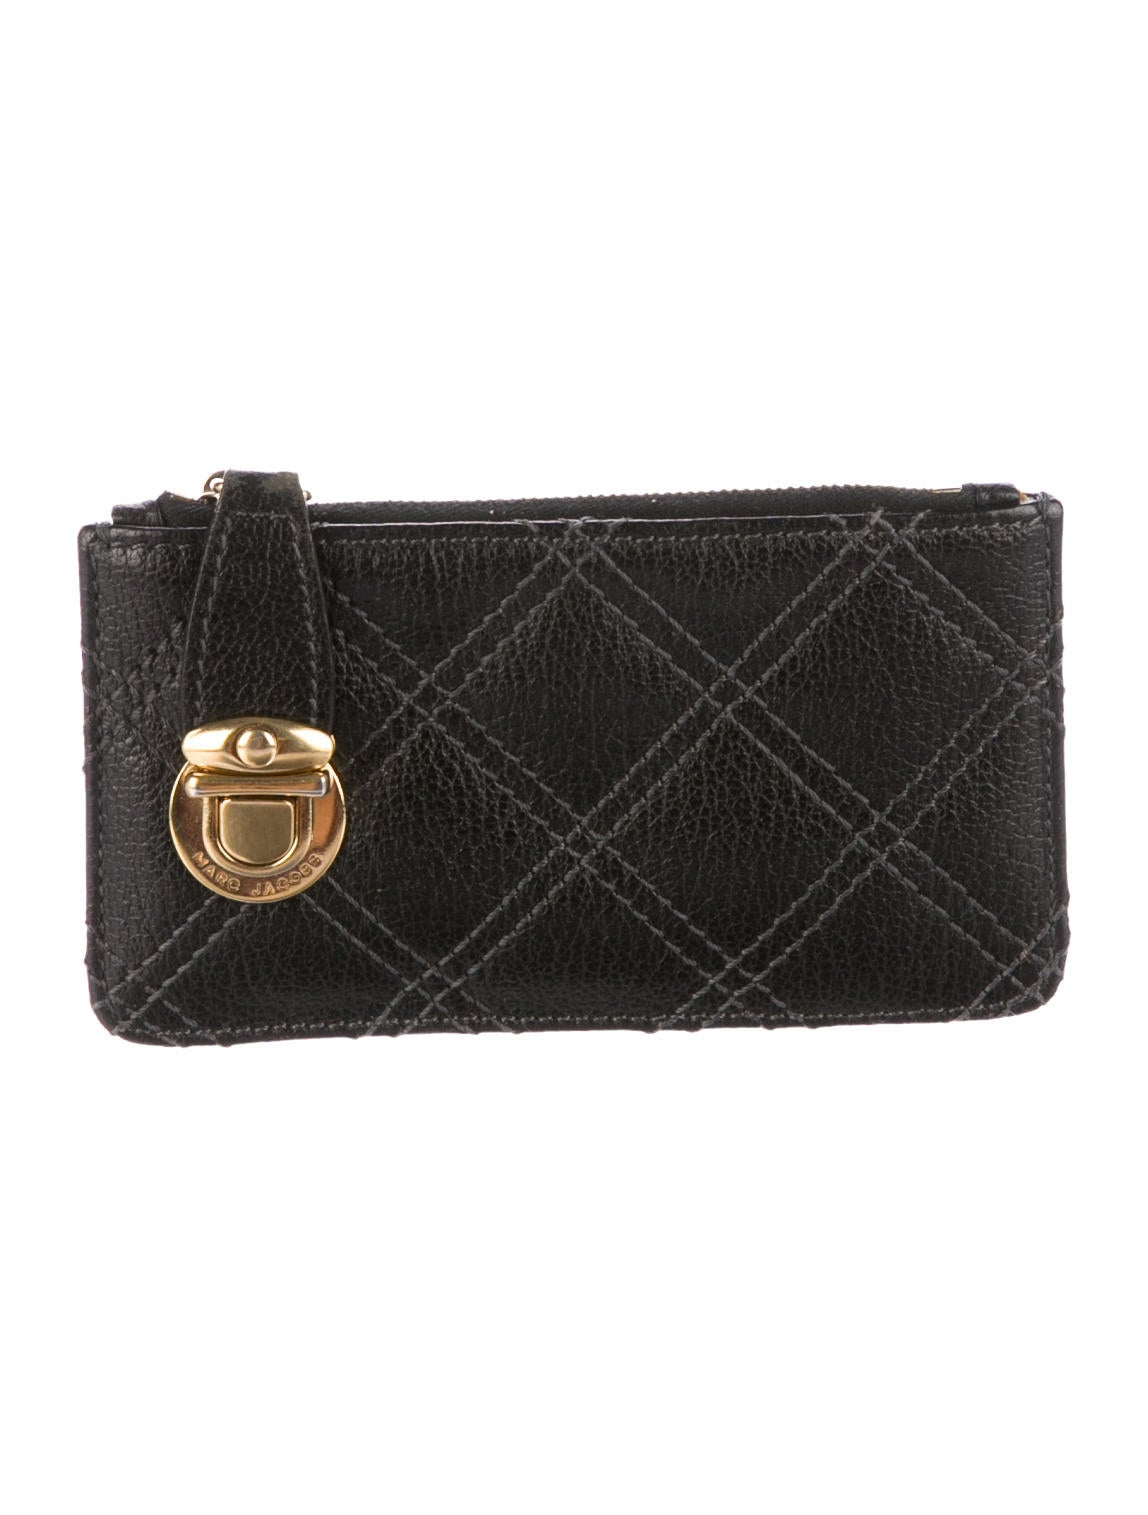 Marc Jacobs Quilted Key Pouch - Accessories - MAR48555 | The RealReal : marc jacobs quilted wallet - Adamdwight.com